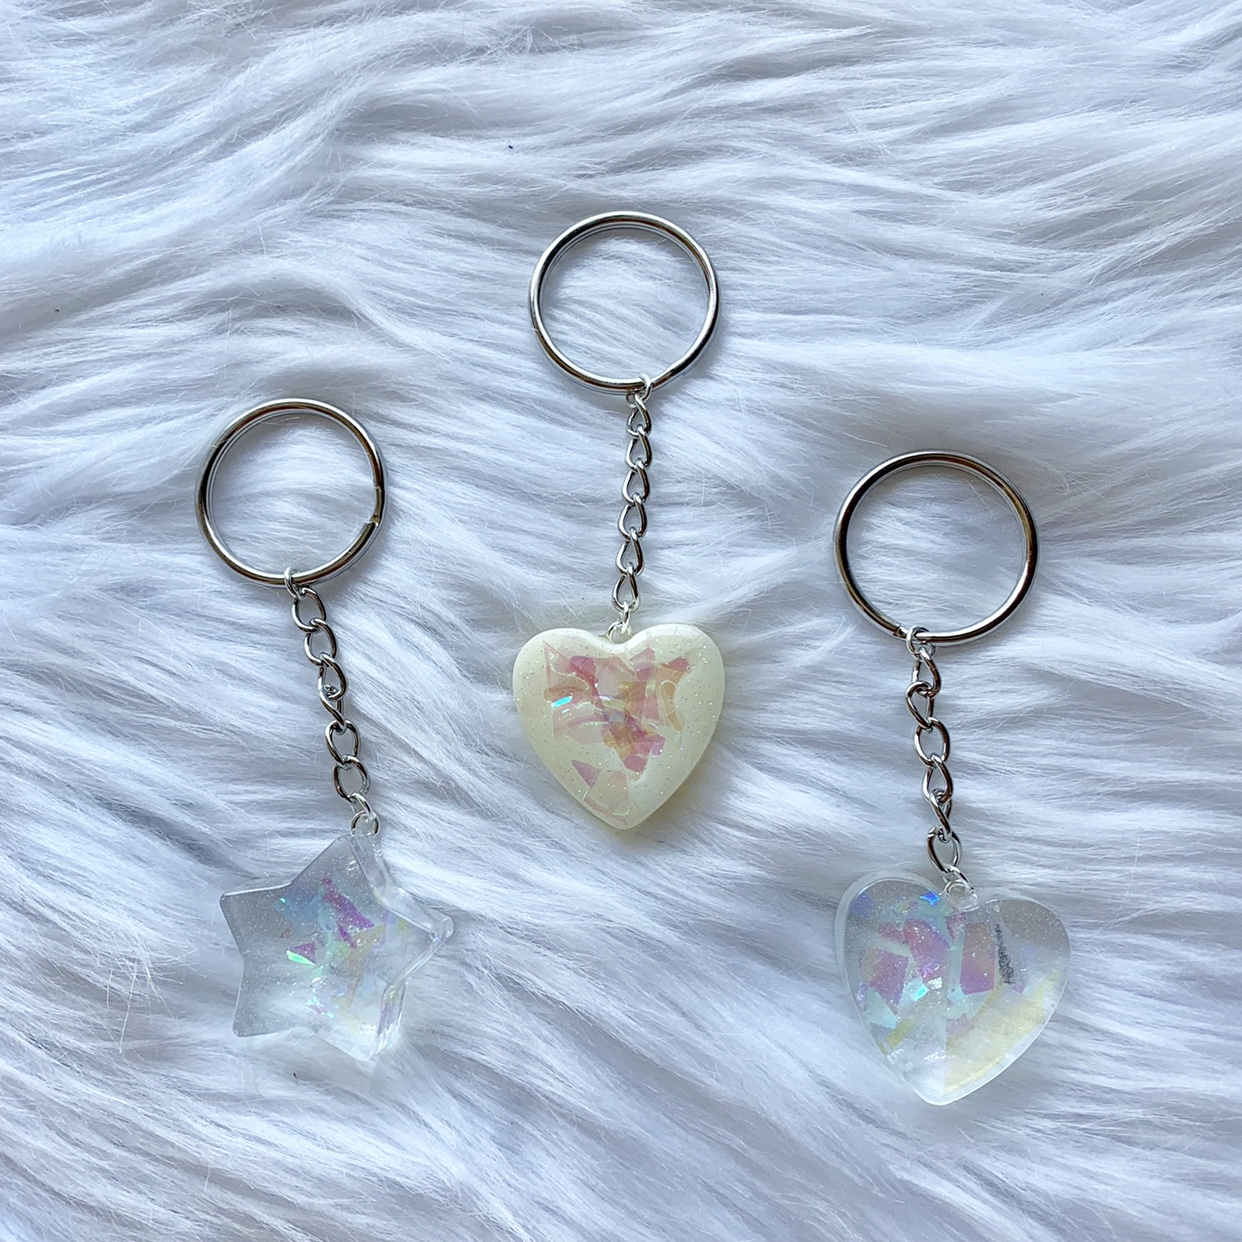 💫 magical keychains 💫 -handmade resin pieces with    - Depop